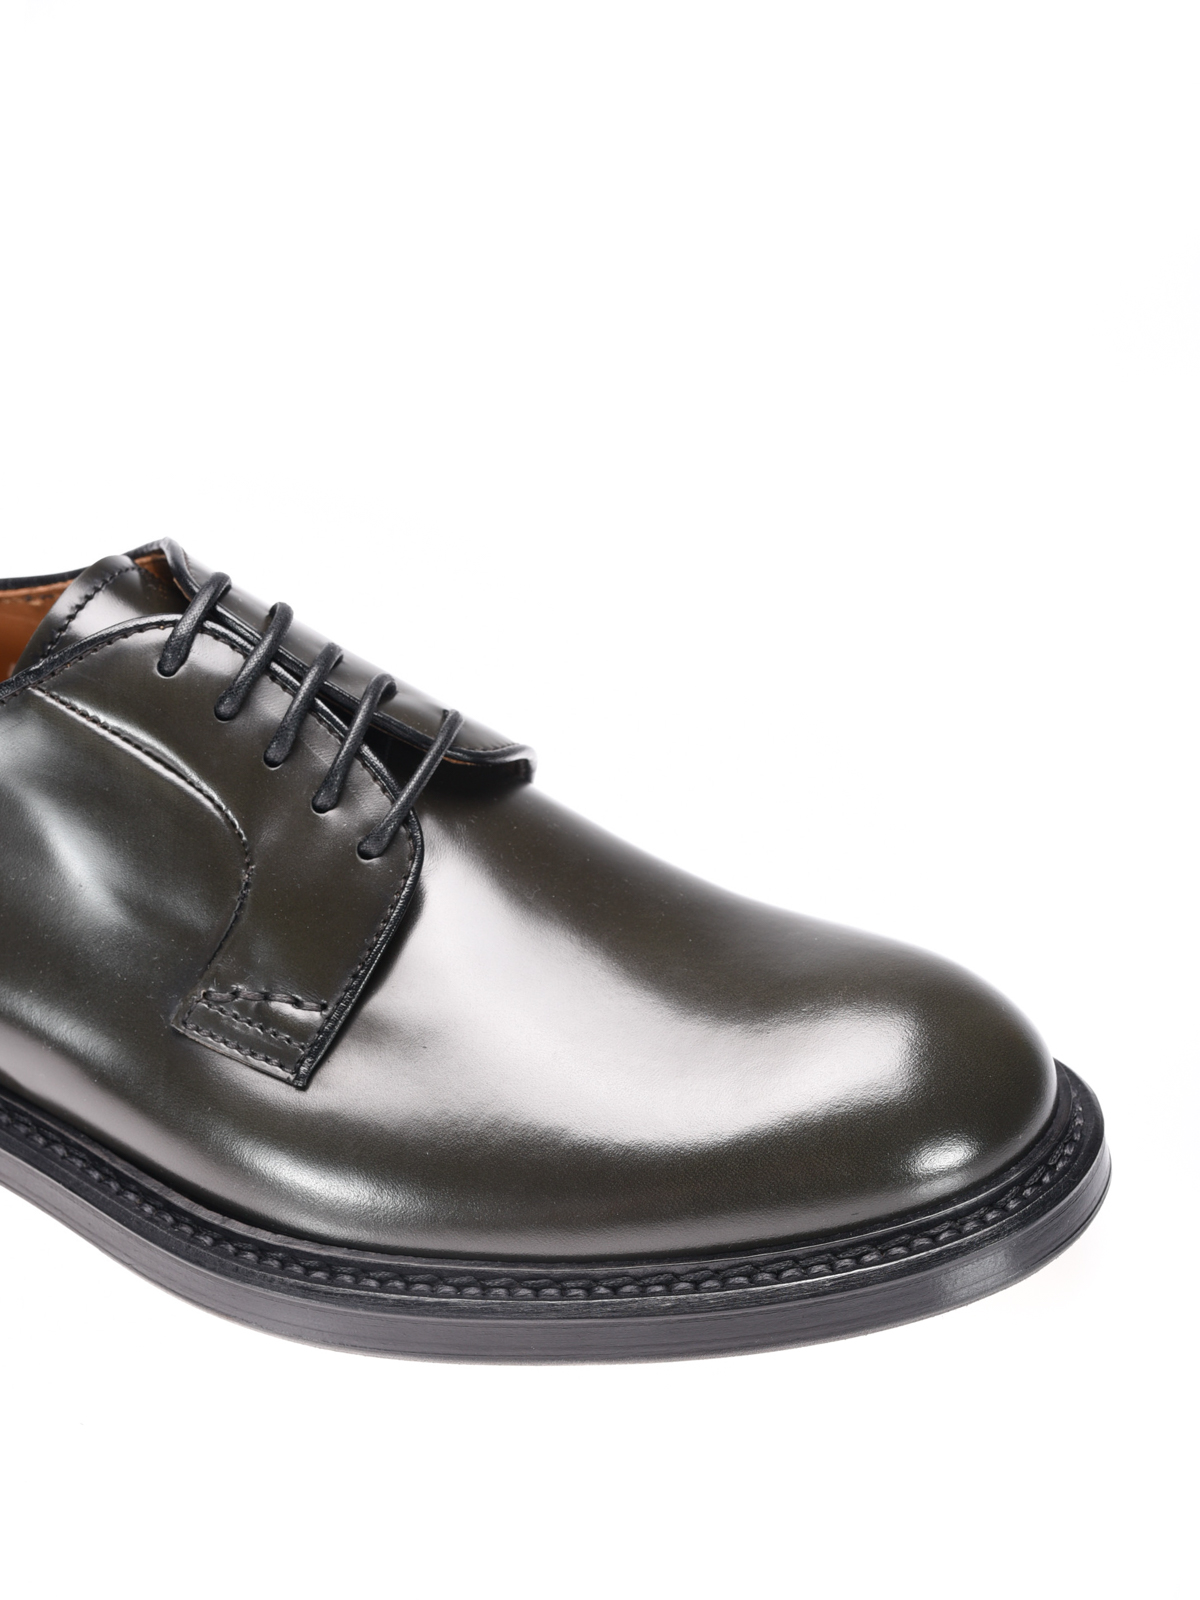 eee7d4345f4 Doucal s - Leather classic Derby shoes - classic shoes ...